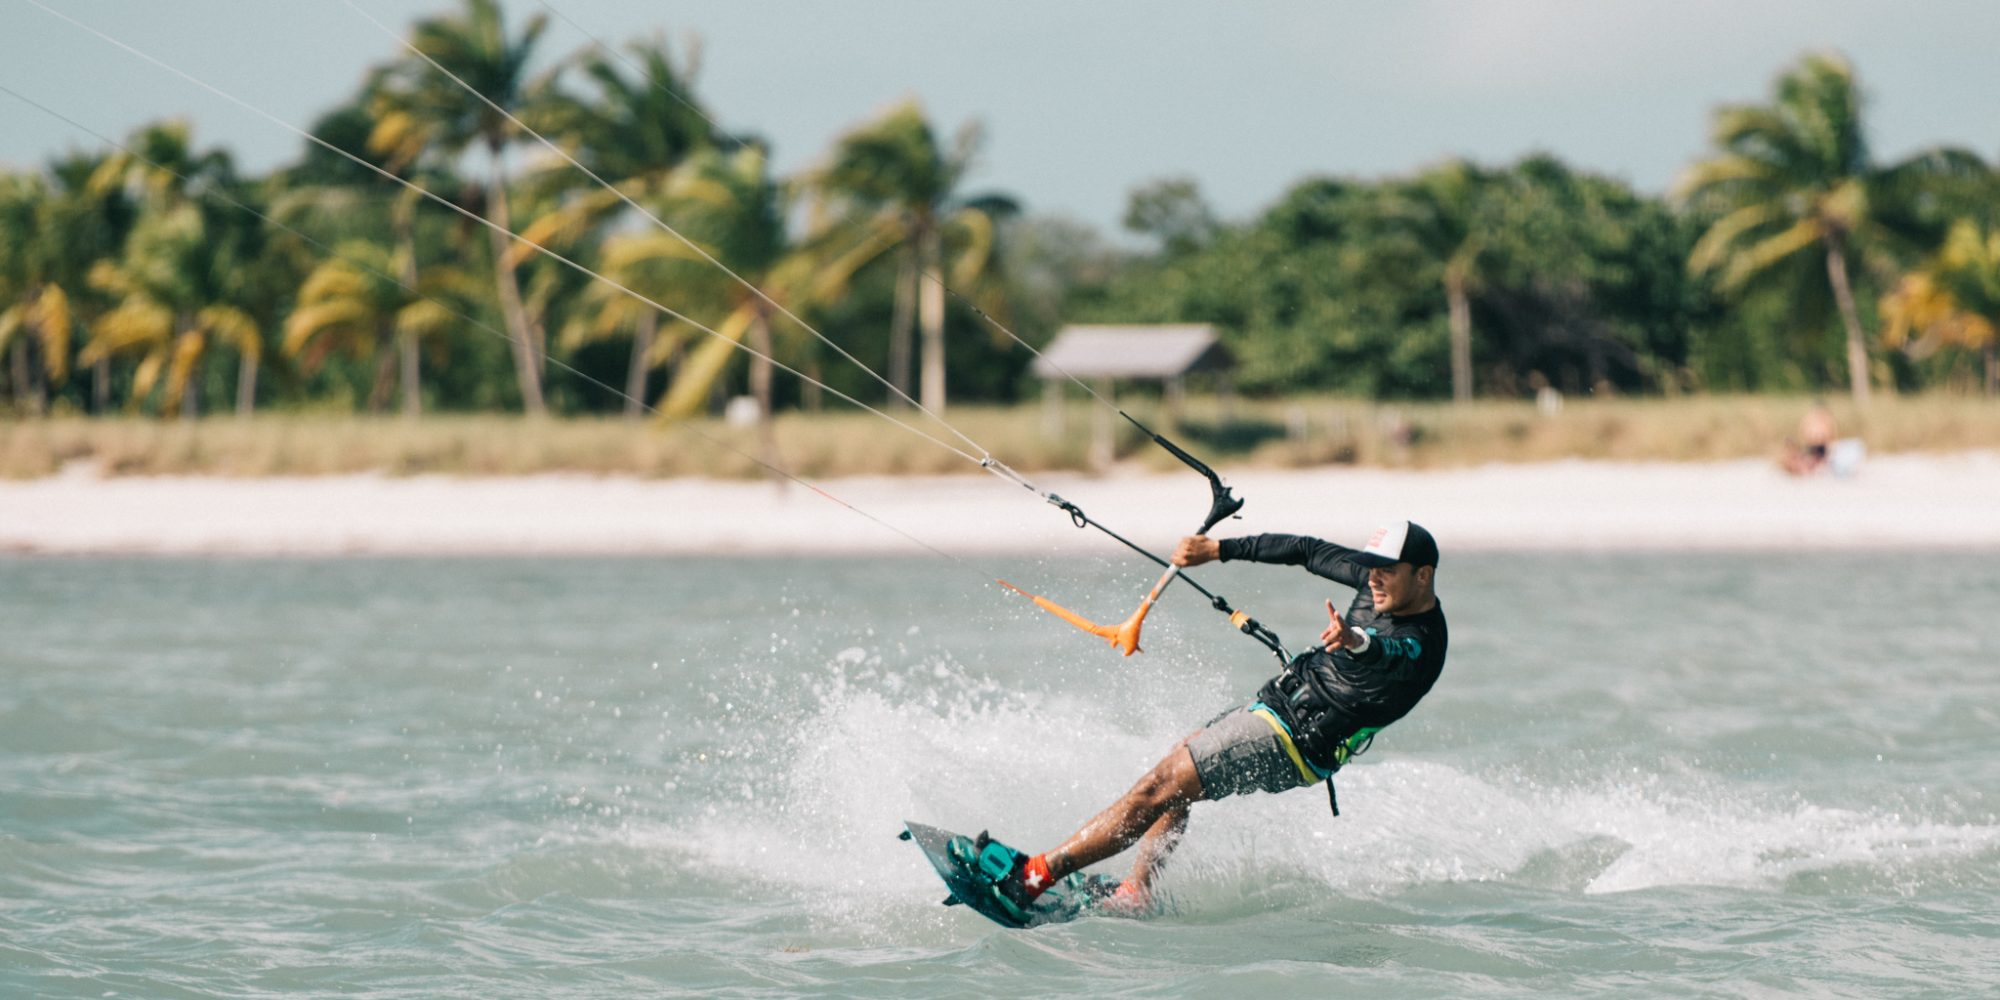 Kiting In Key West Photos 1 2 - Lifestyle Photography - The Florida Keys Way